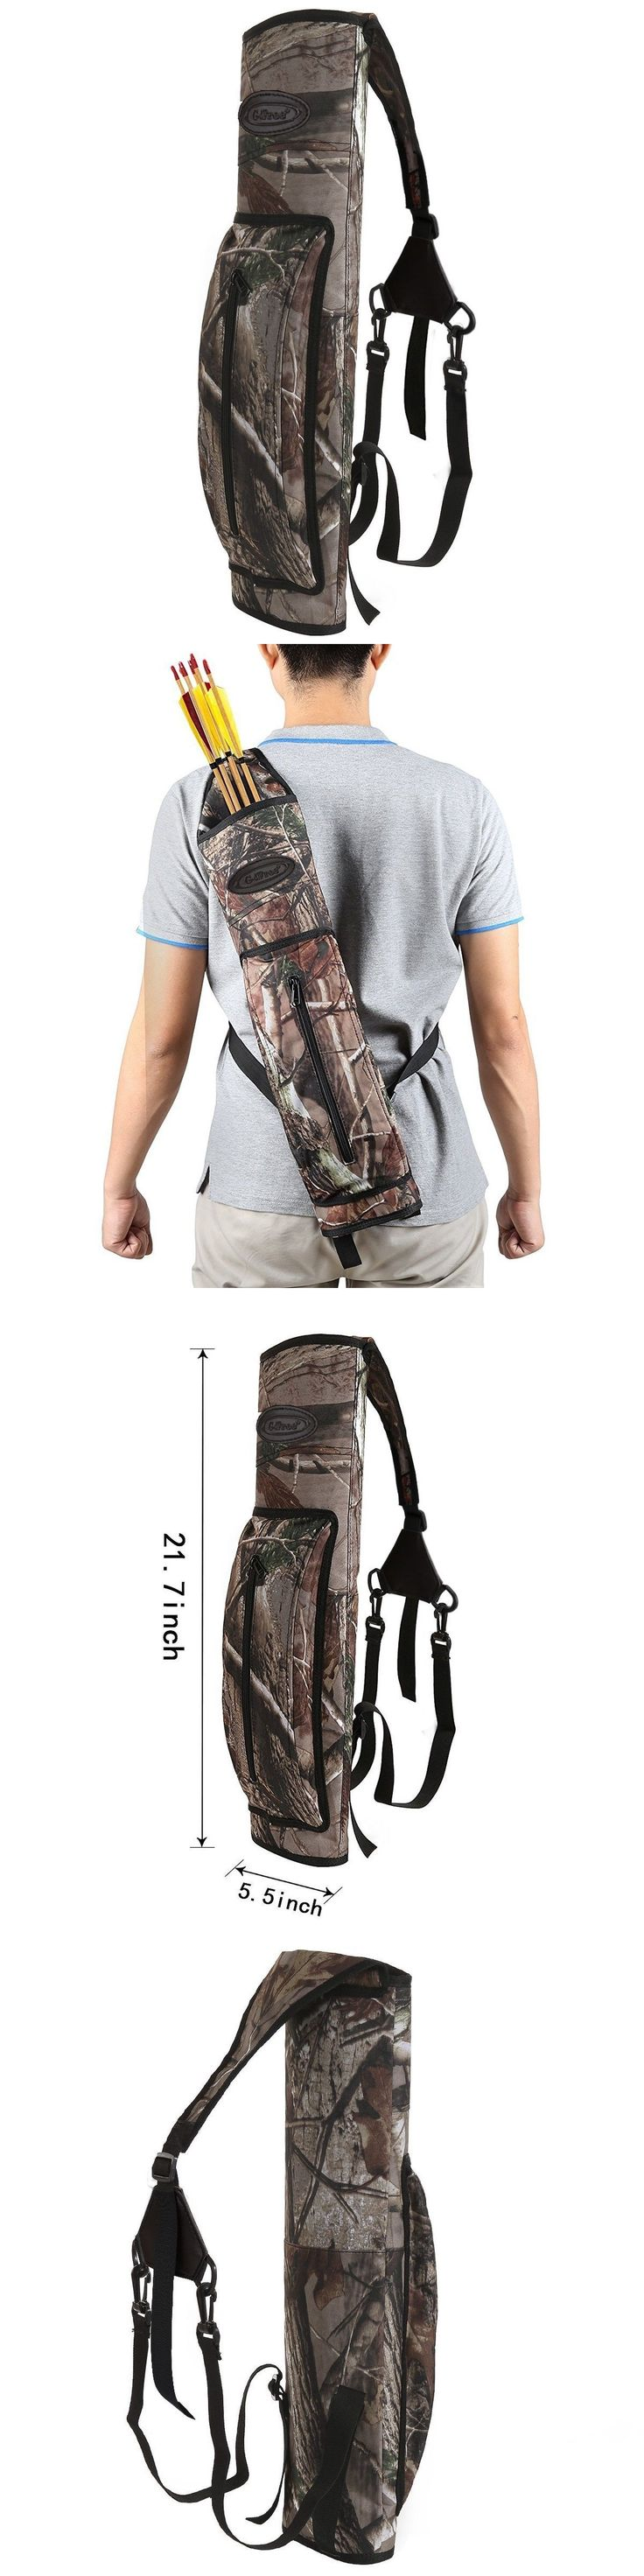 Quivers 20843: G4free Archery Deluxe Canvas Back Arrow Quiver Hunting Target Arrow Quiver -> BUY IT NOW ONLY: $35.29 on eBay!